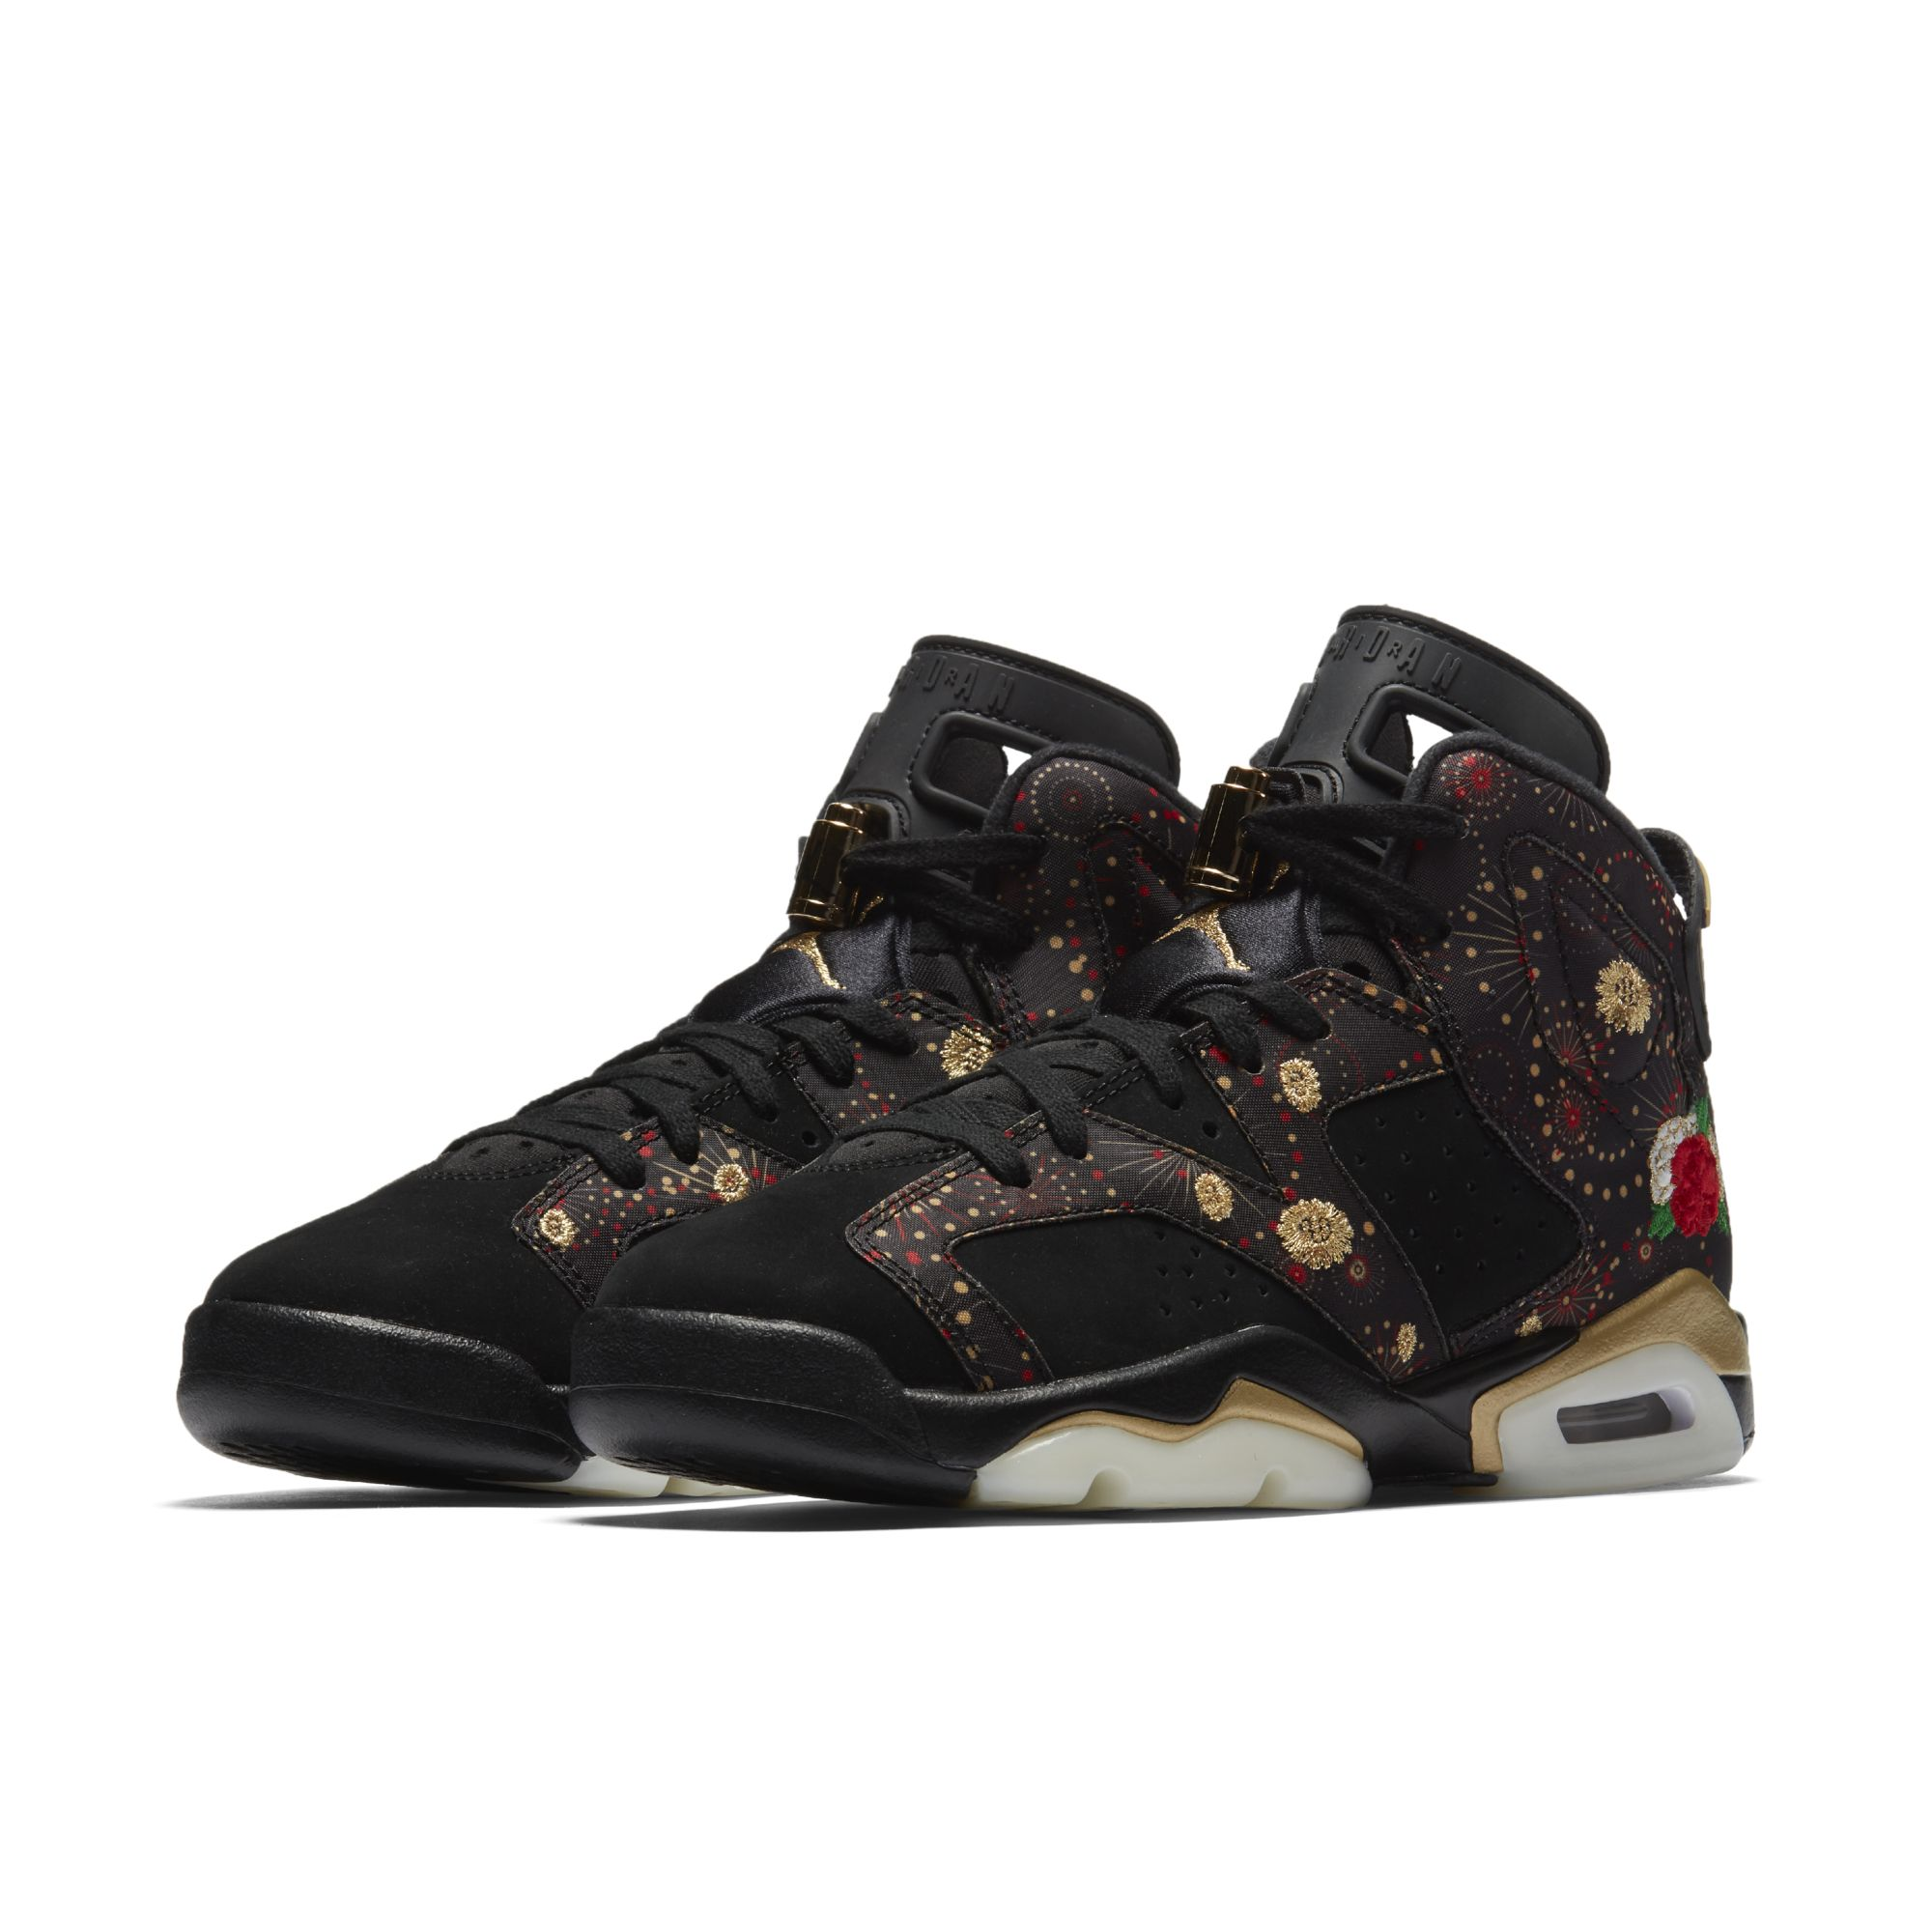 air jordan 6 retro cny BG official 1